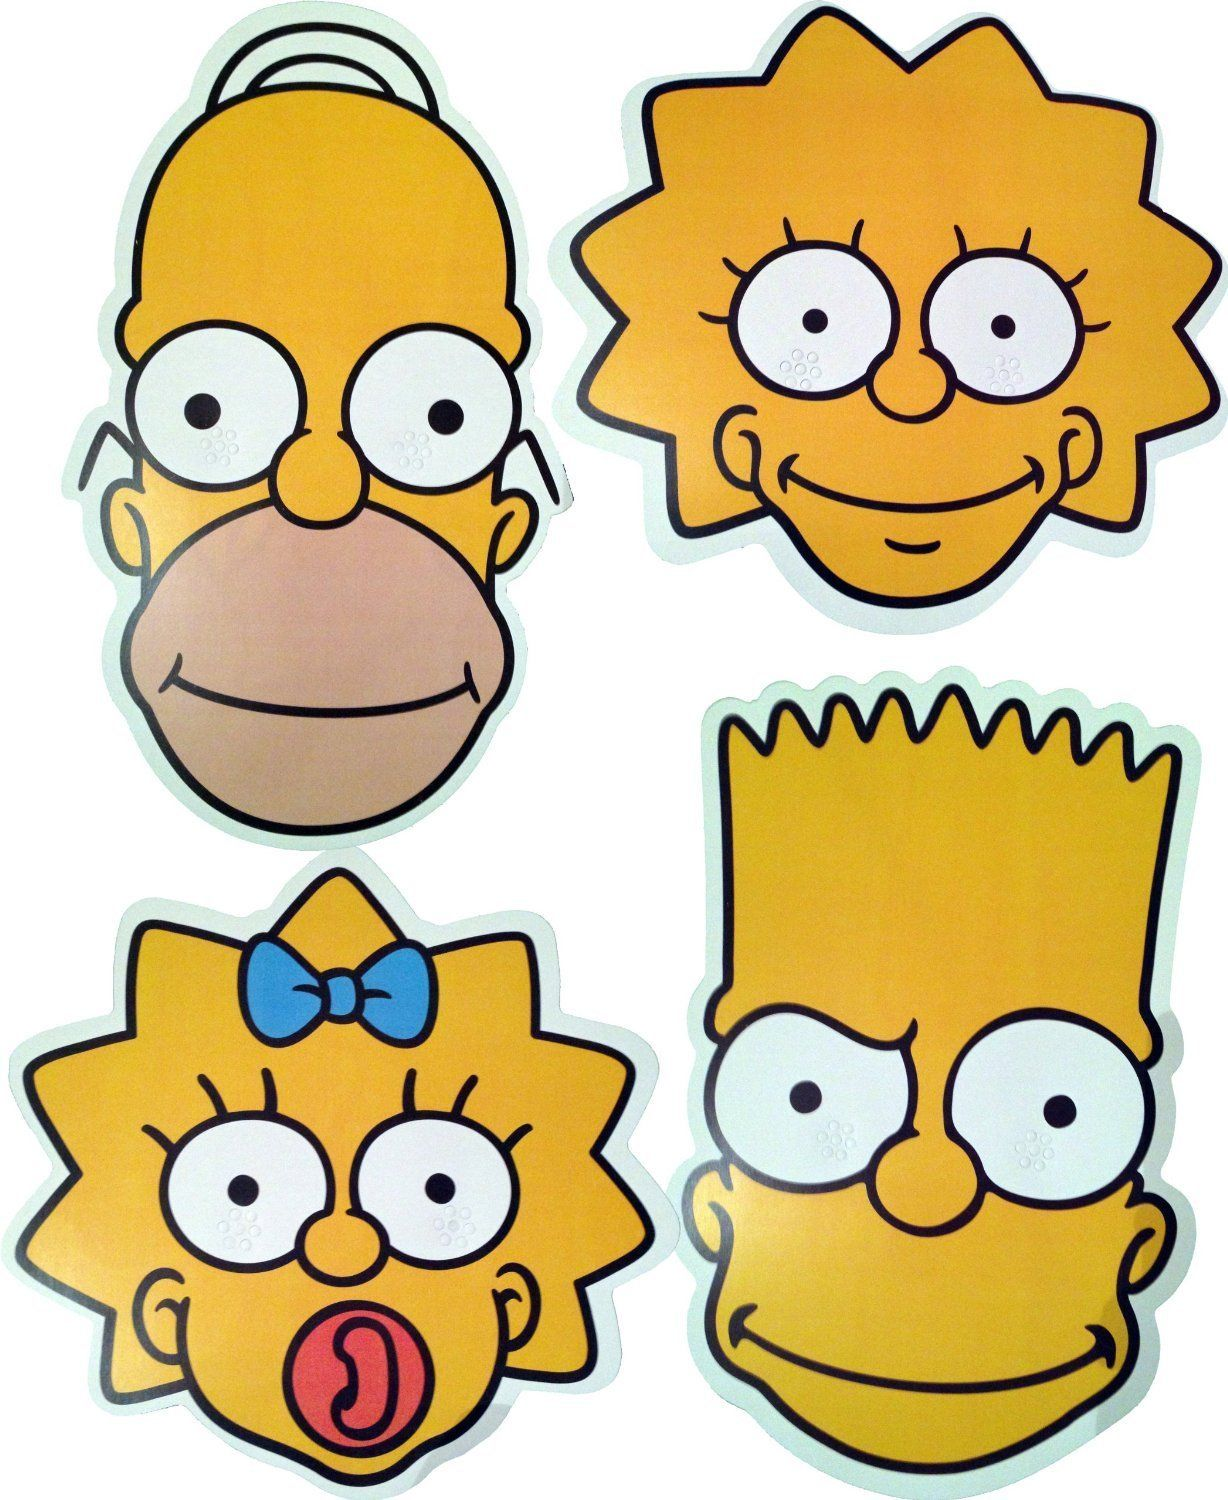 The Simpsons Masks Google Search Los Simpson Cumpleaños Fiesta De Simpsons Dibujos De Los Simpson